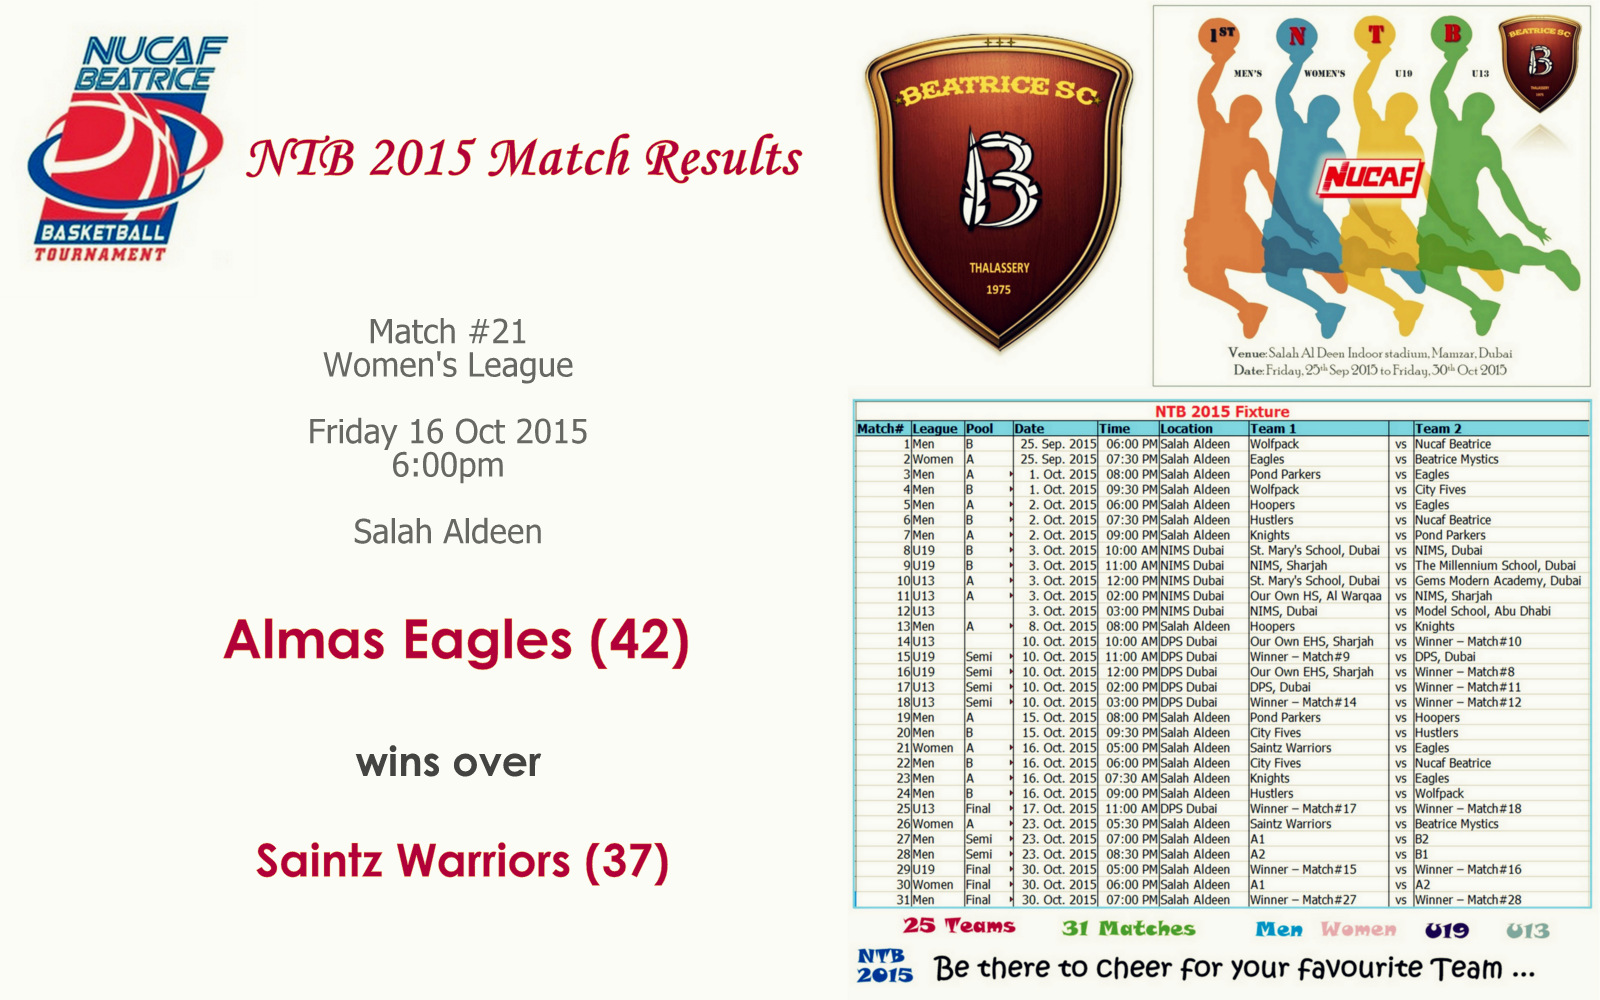 NTB 2015 – Match #21 | Saintz Warriors (37) Vs Almas Eagles (42)